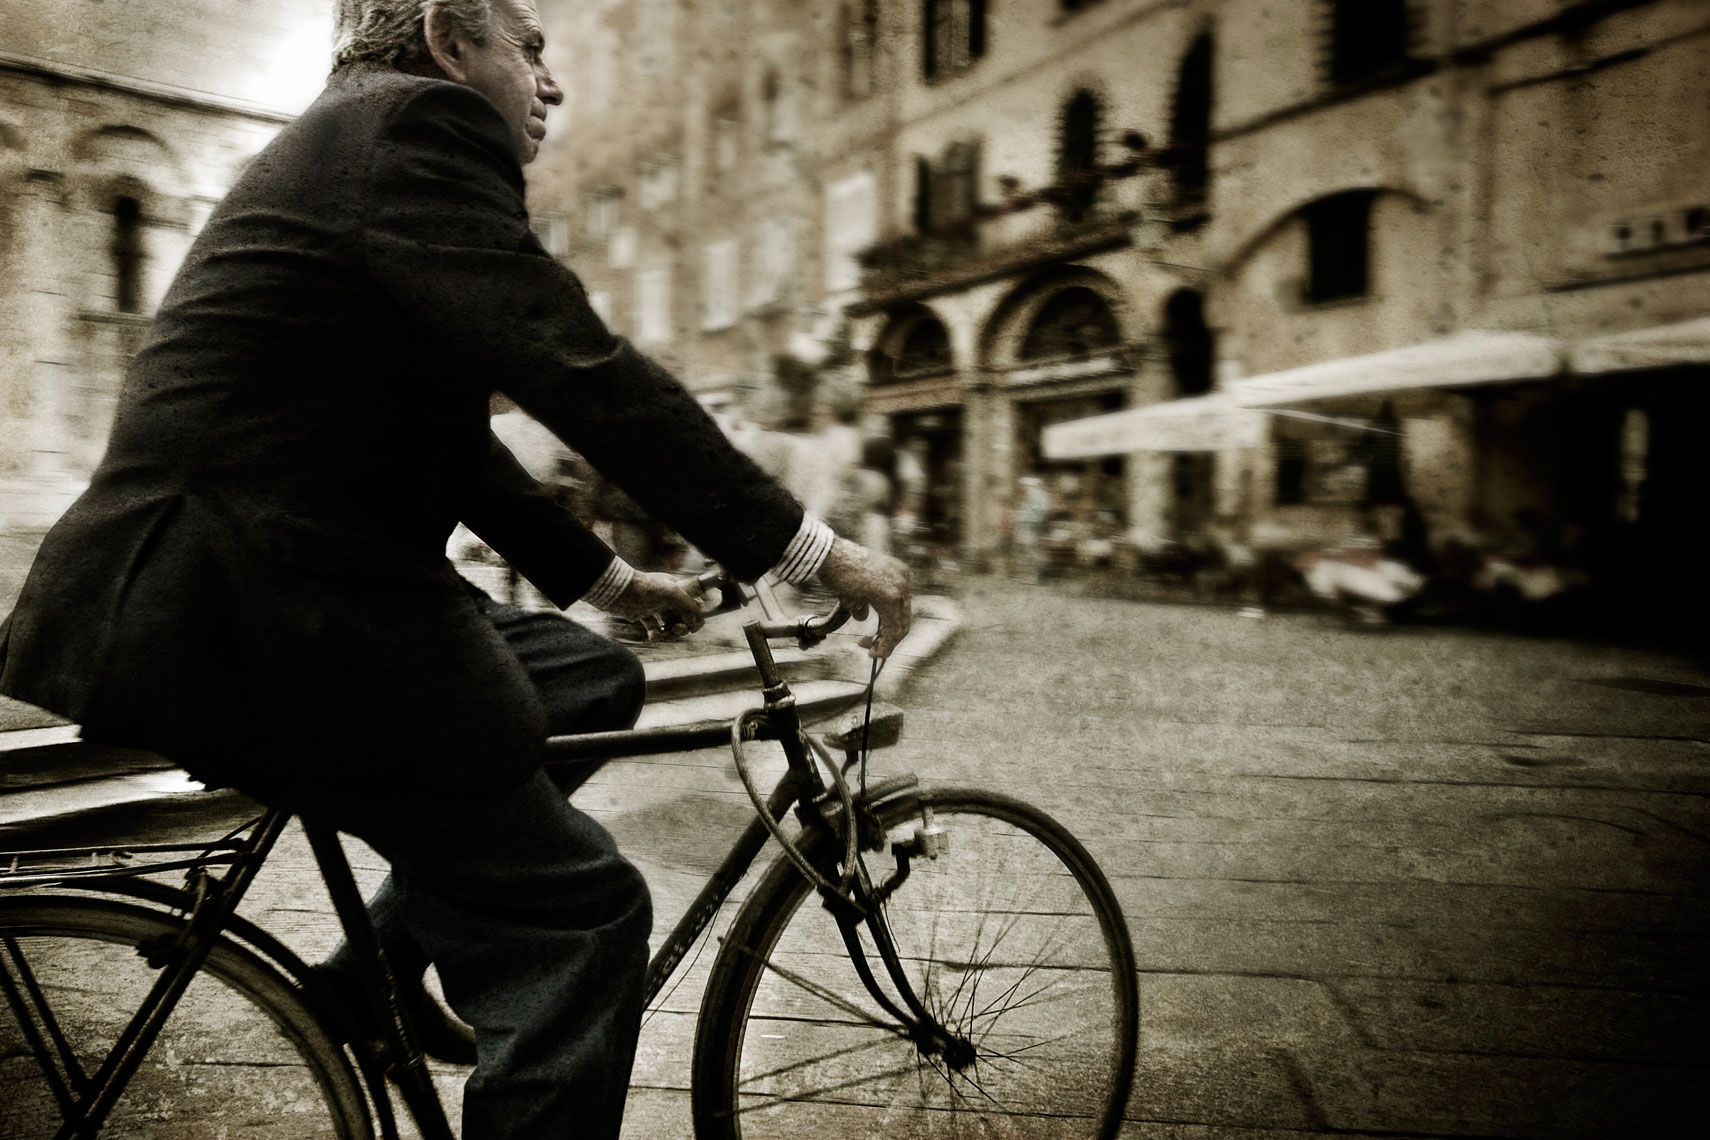 Portrait of Man on Bicycle in Italy